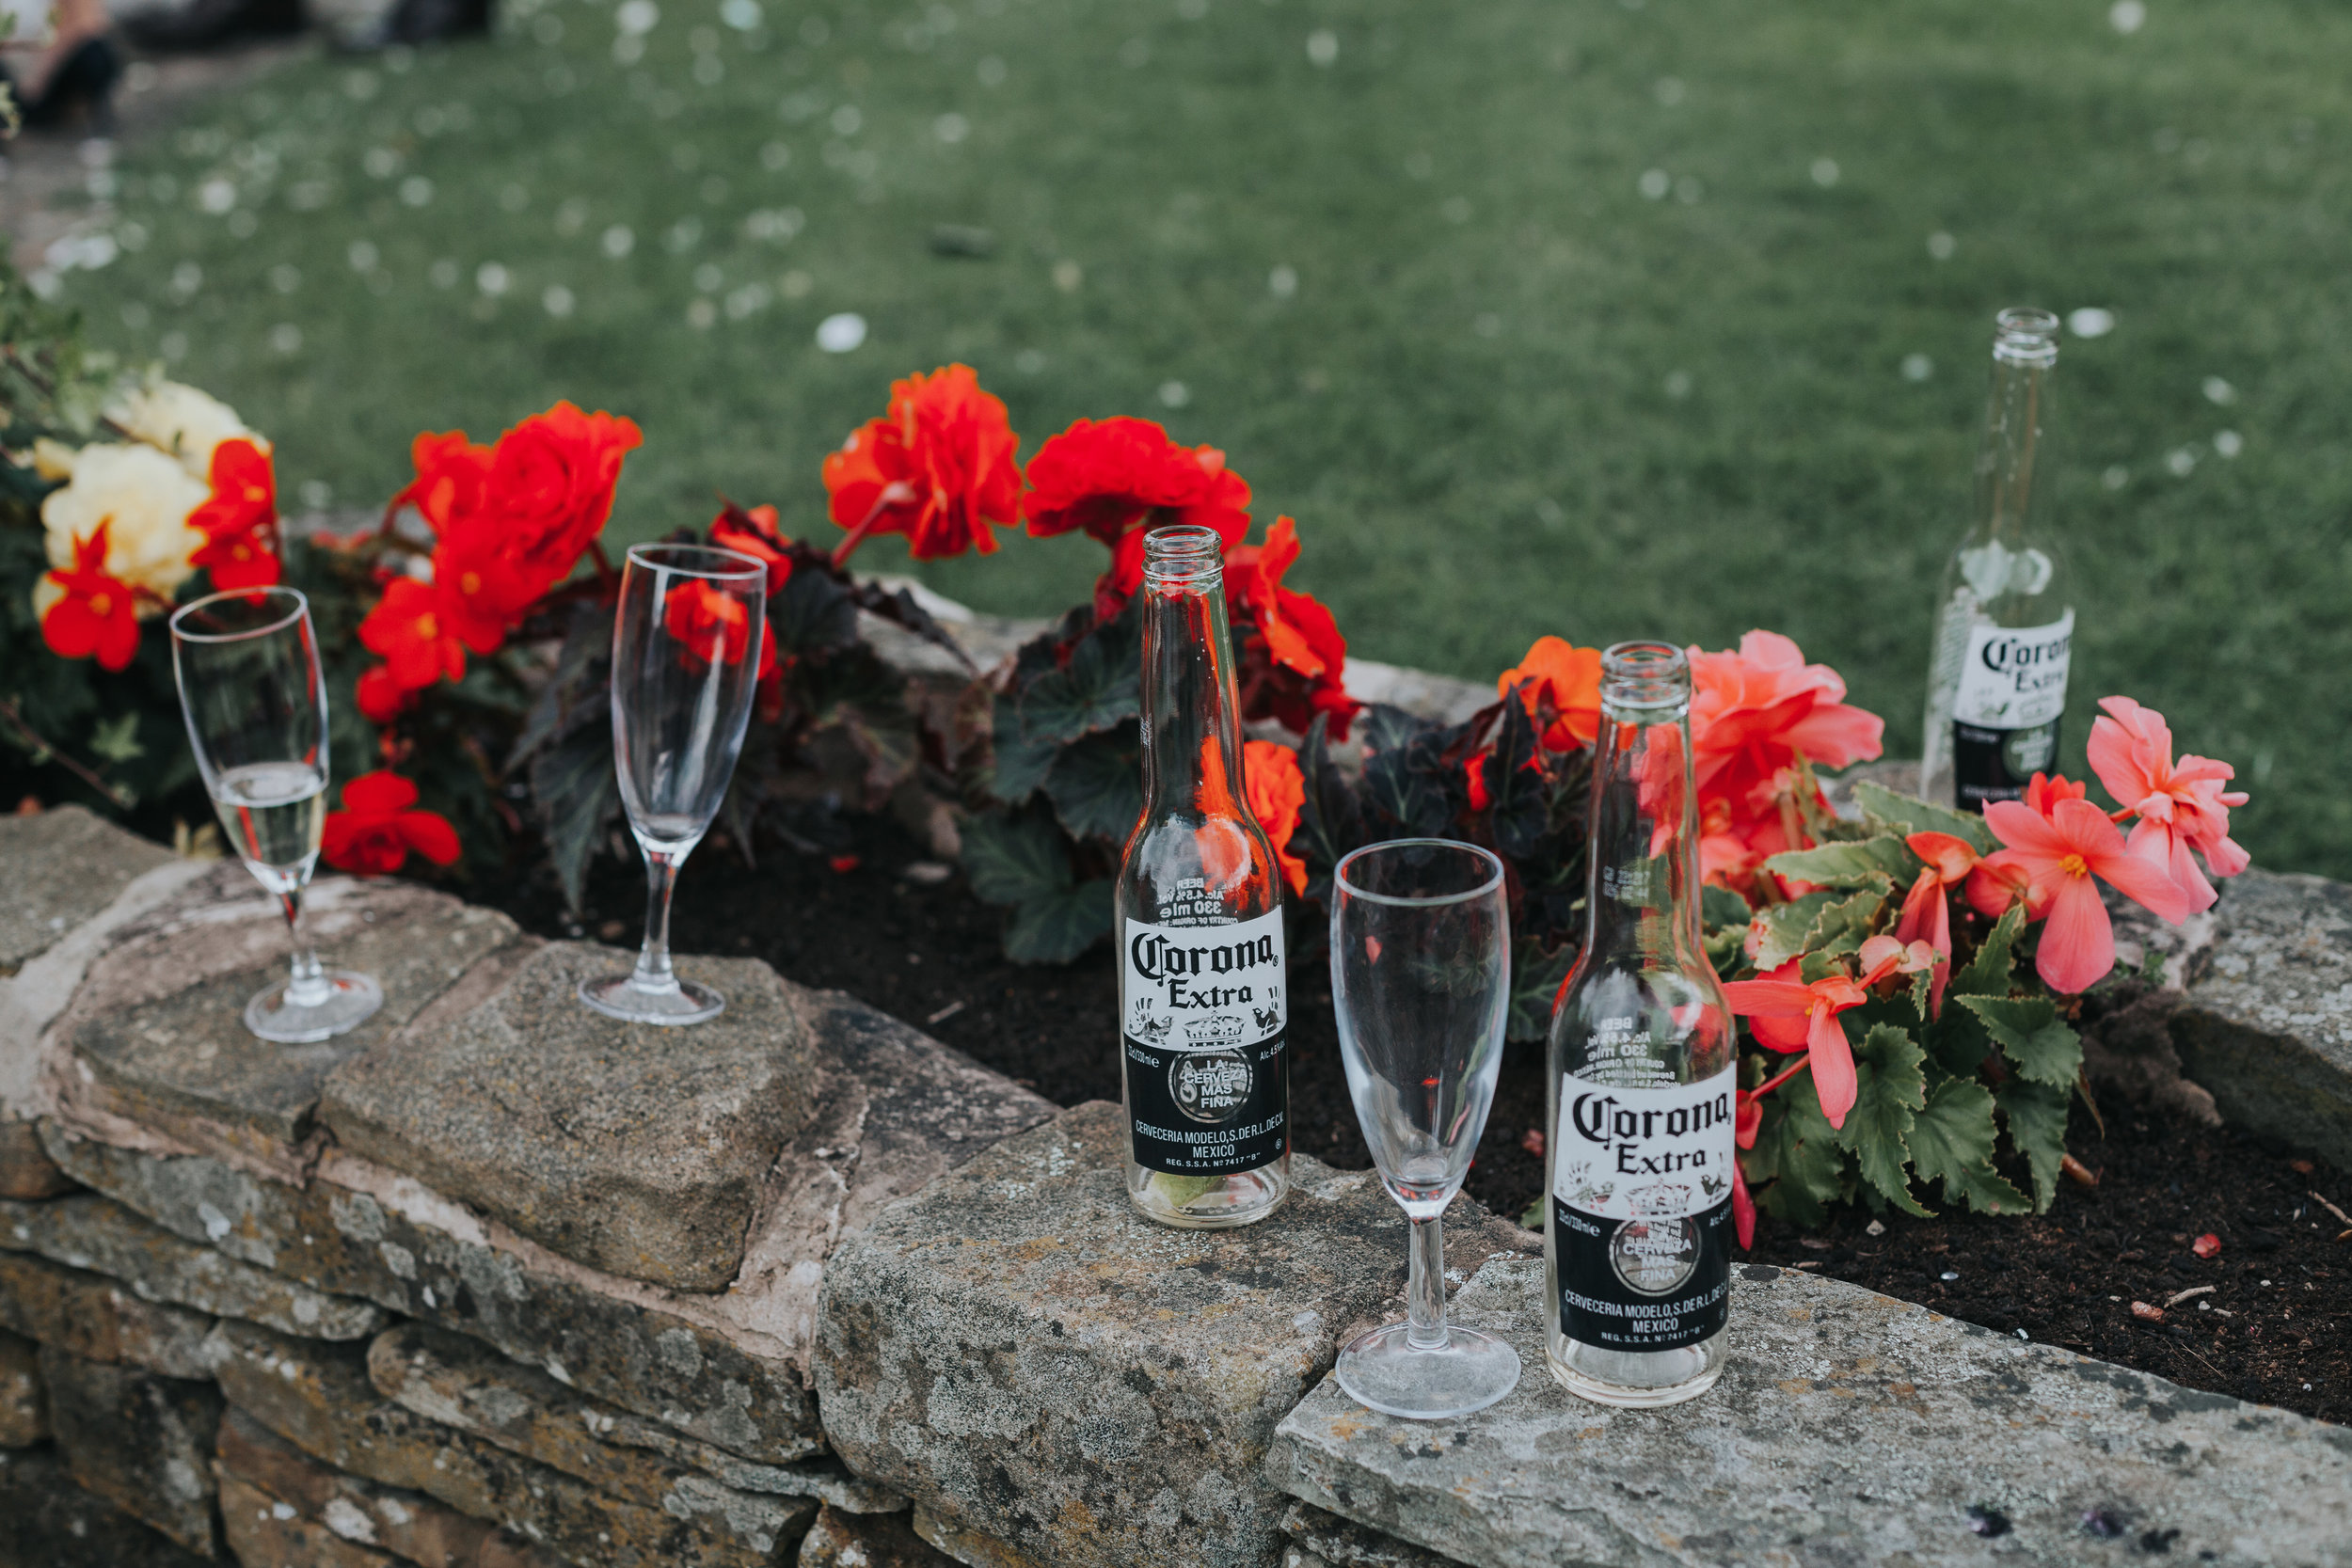 Empty beer bottles and champagne flutes are left in the flower bed. Red flowers.